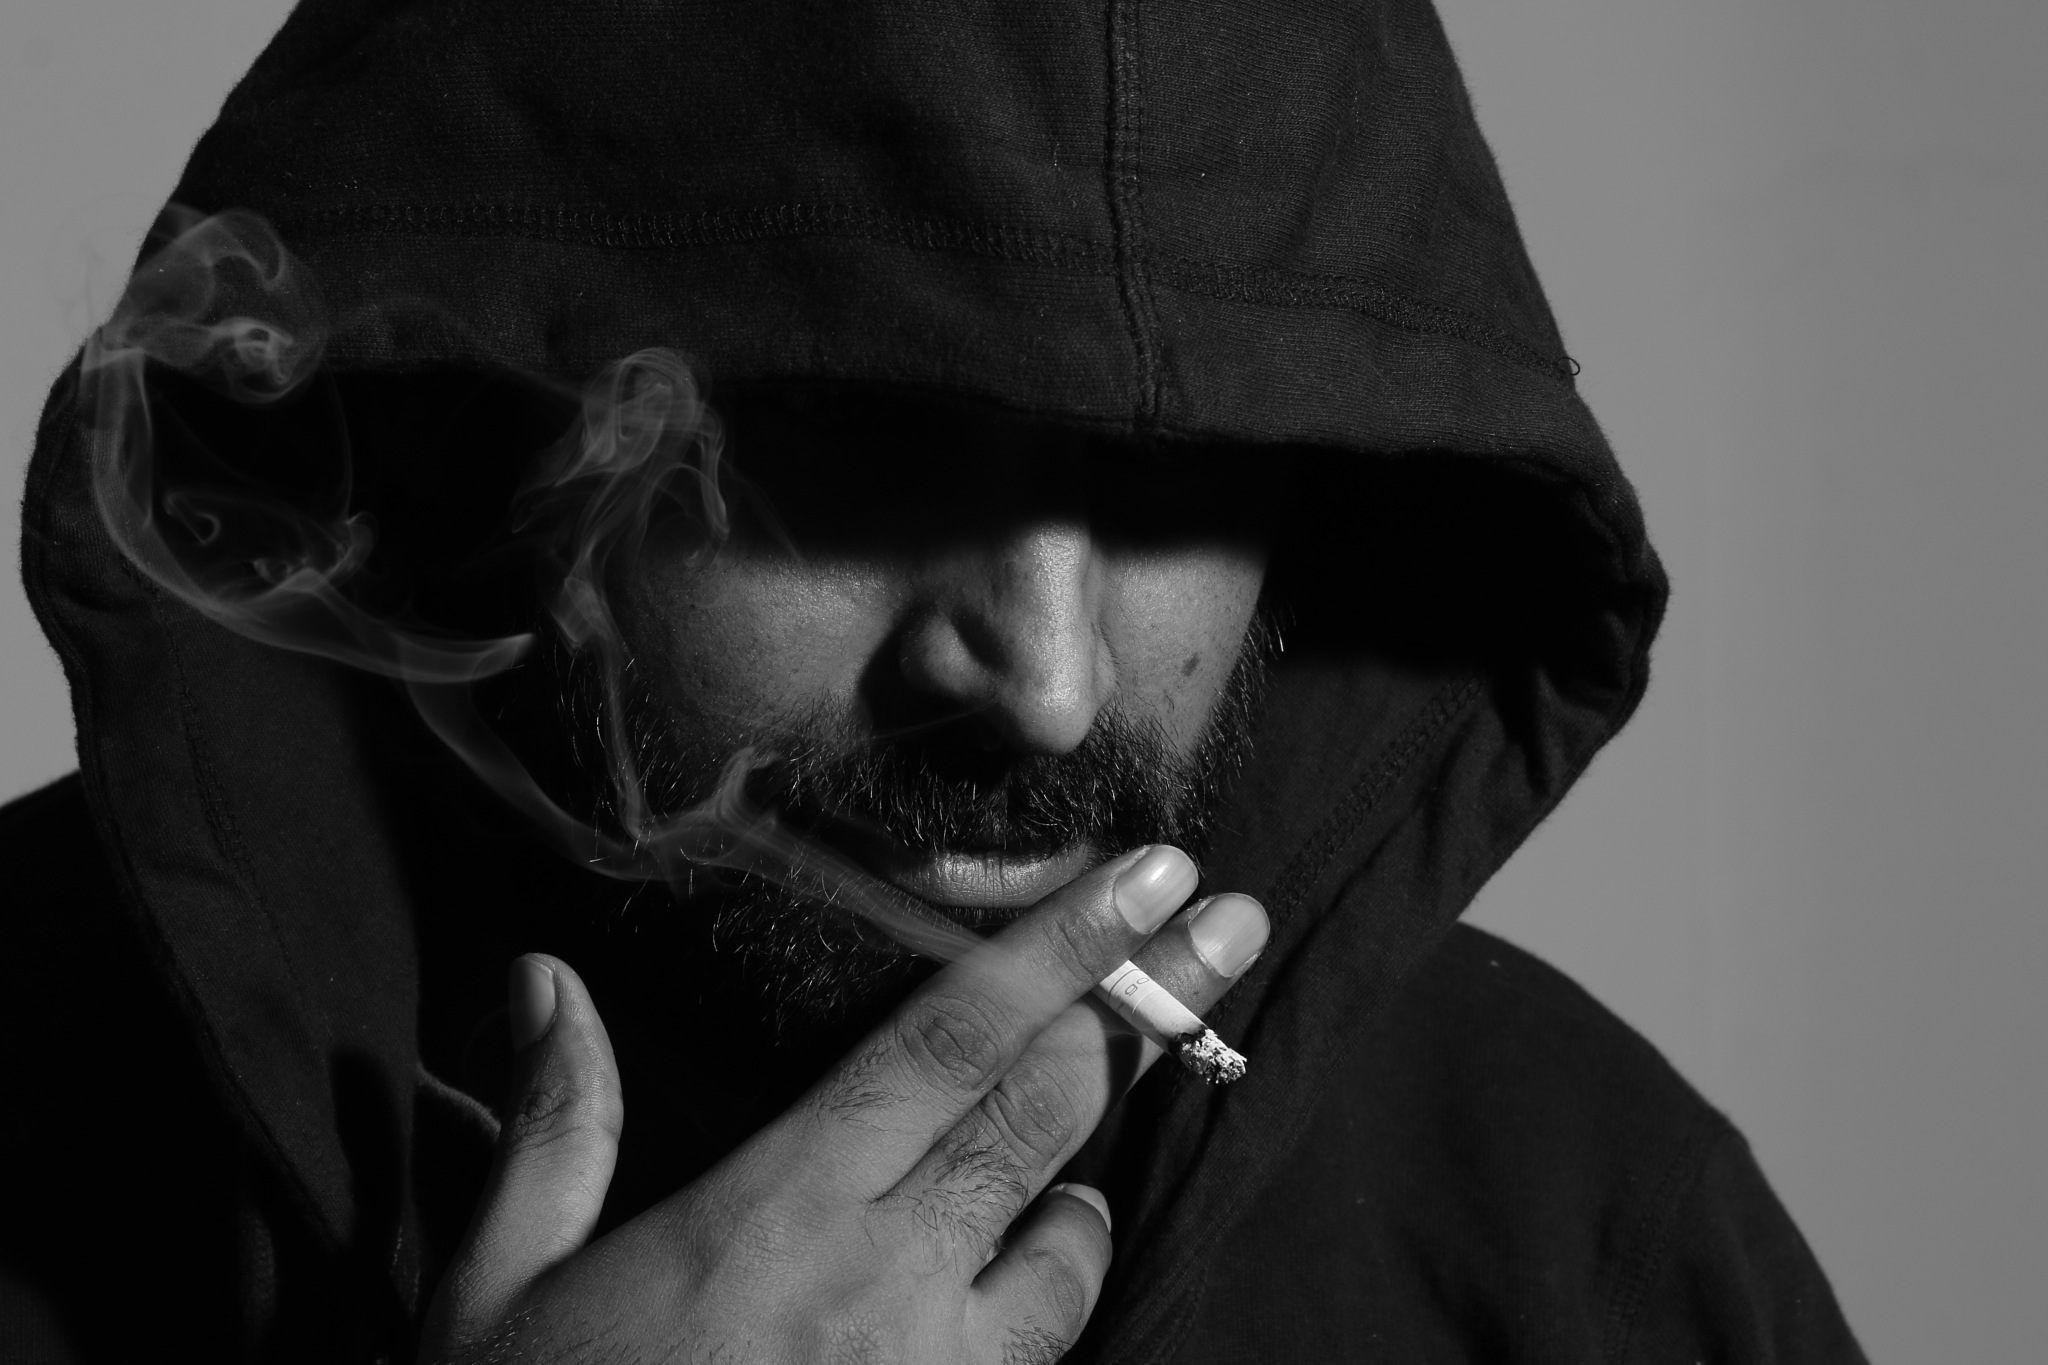 Warning: Smoking is injurious to health by SALMAN AHMED